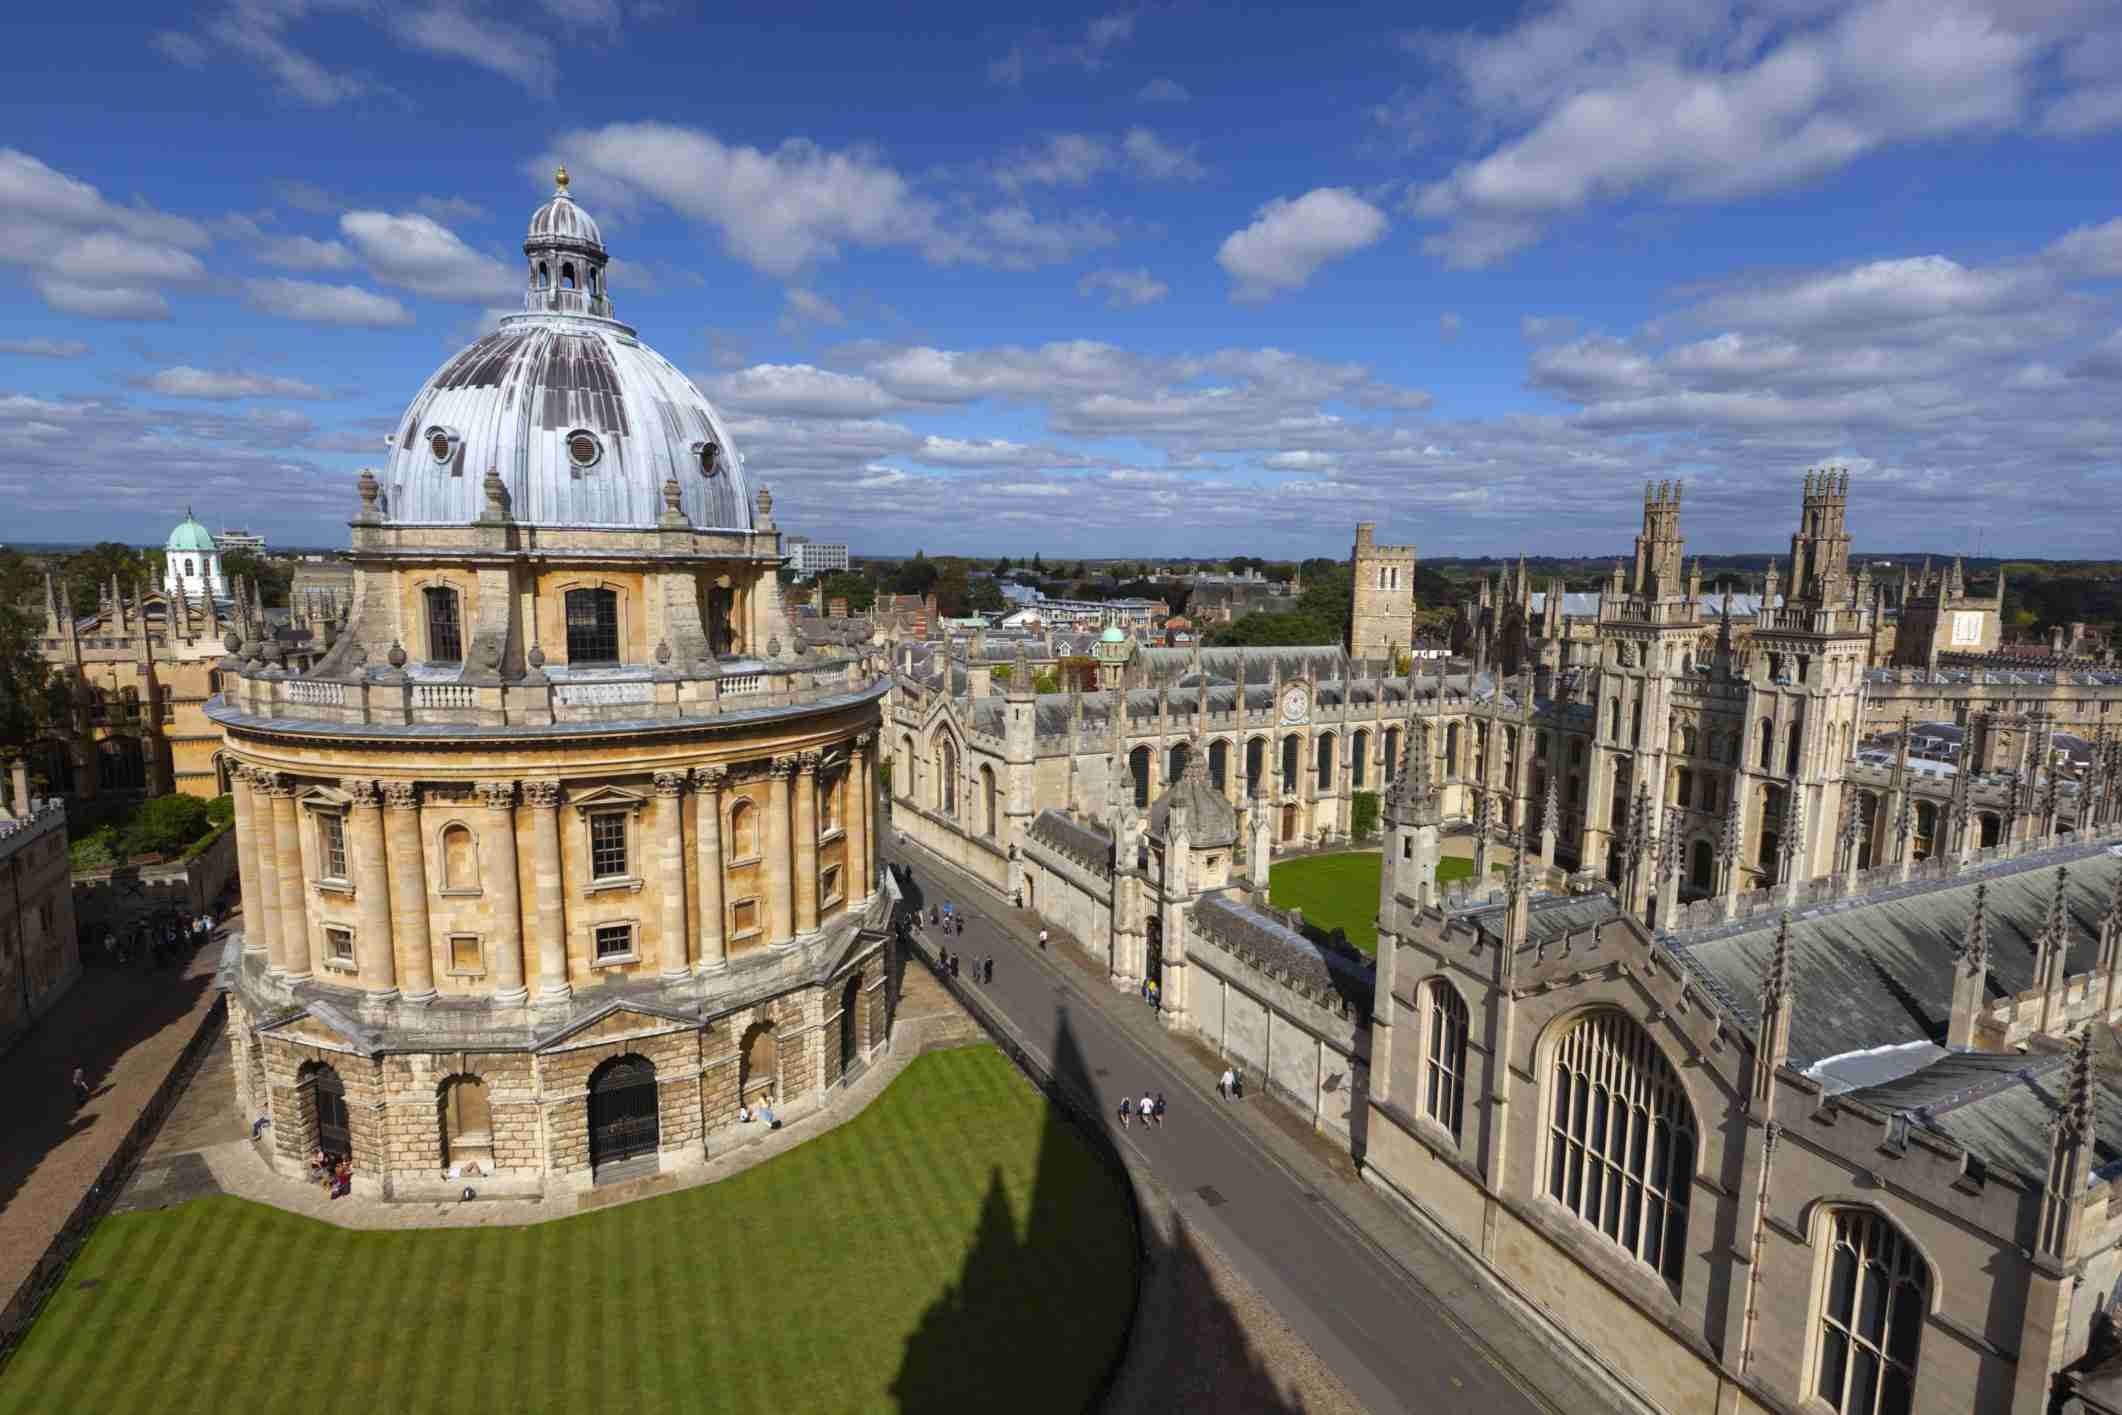 Radcliffe Camera and All Souls College in Oxford, England against a blue sky